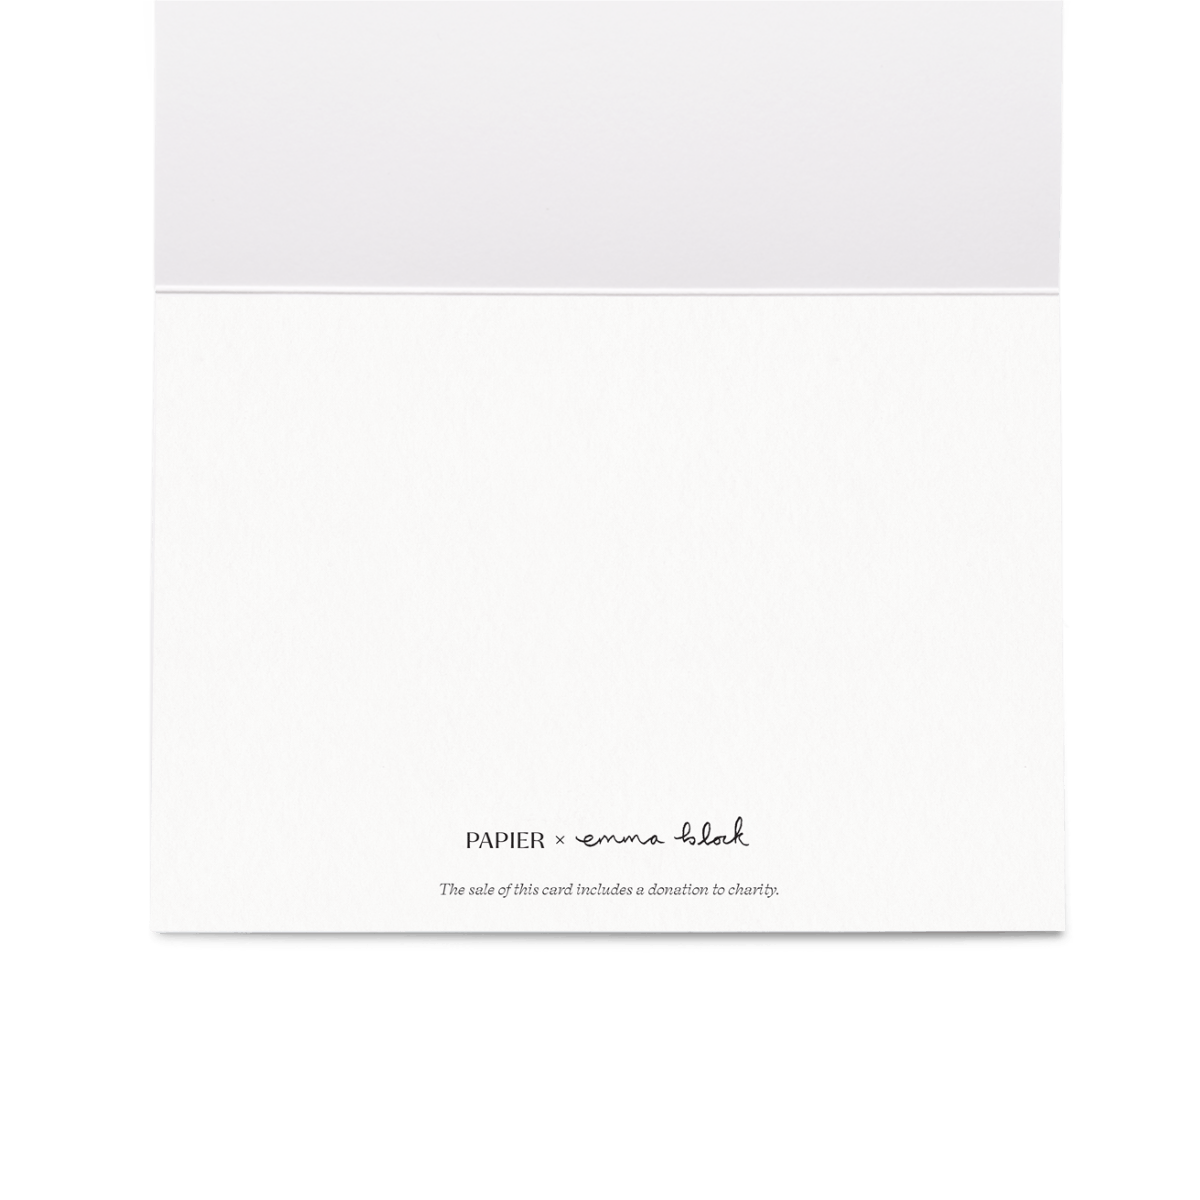 Https%3a%2f%2fwww.papier.com%2fproduct image%2f11724%2f20%2fchristmas convertible 2965 inside 1567717197.png?ixlib=rb 1.1